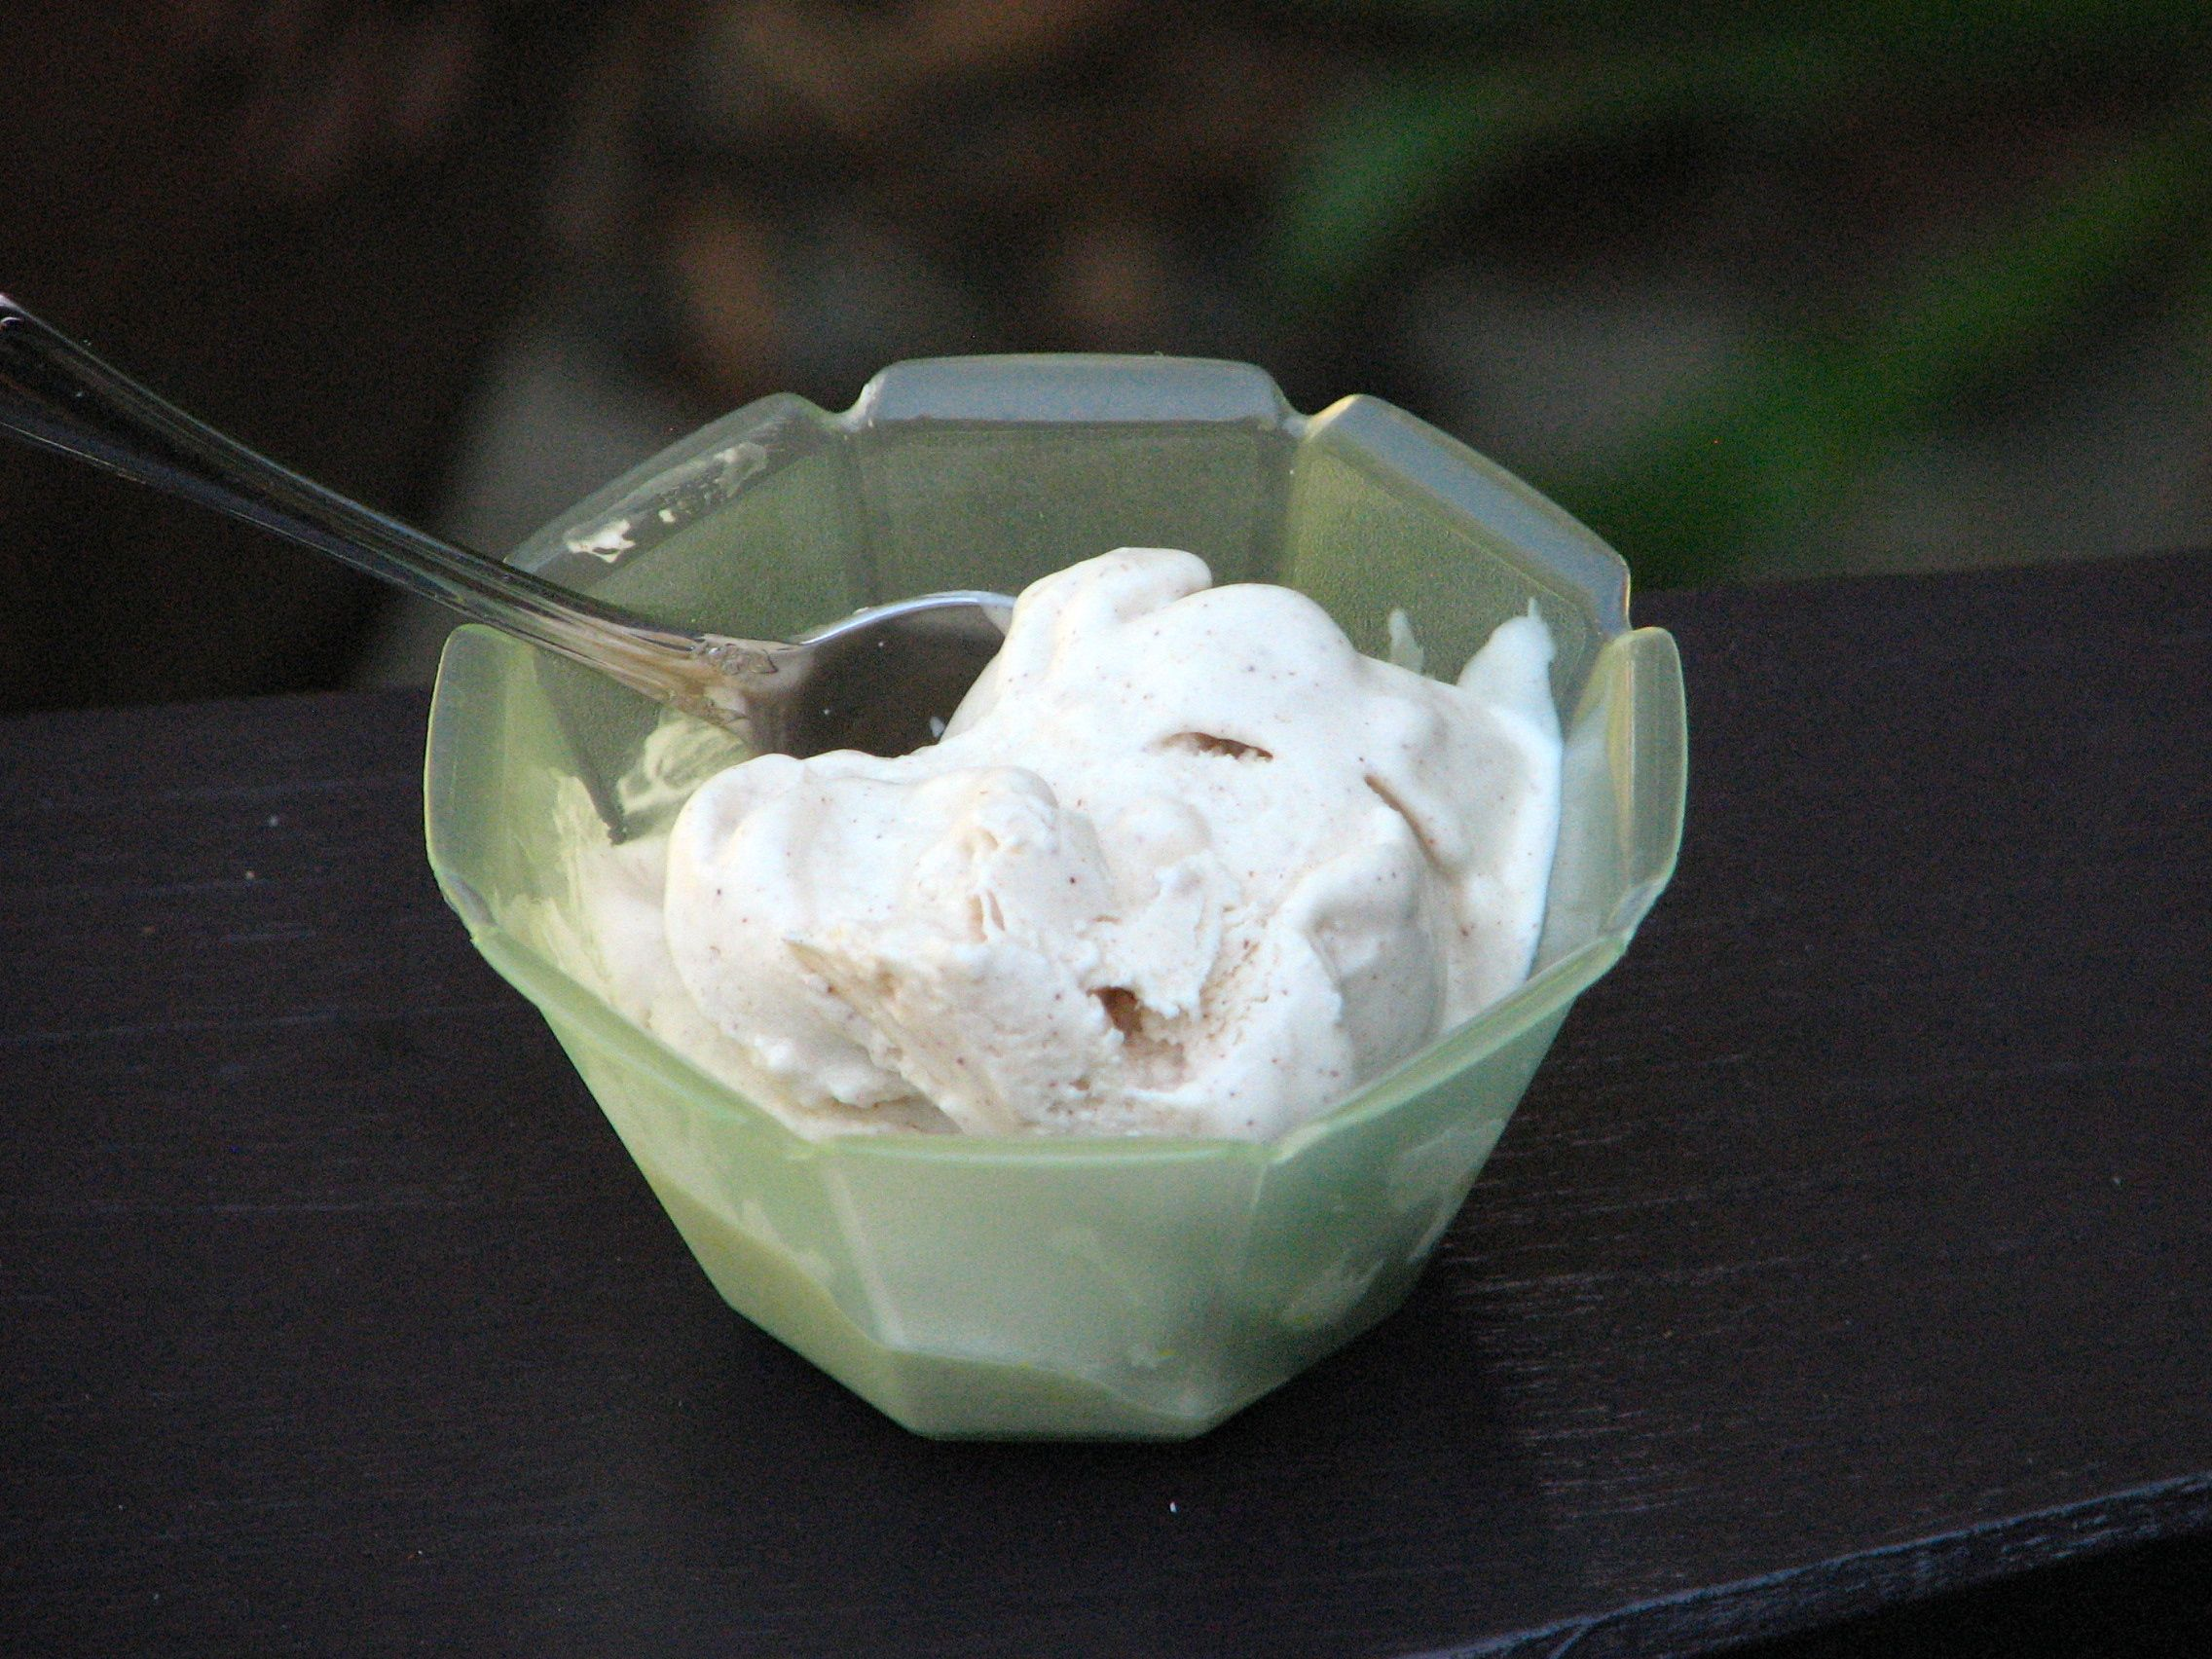 Cinnamon Coconut Frozen Greek Yogurt. See the flecks of cinnamon? Mmmm ...